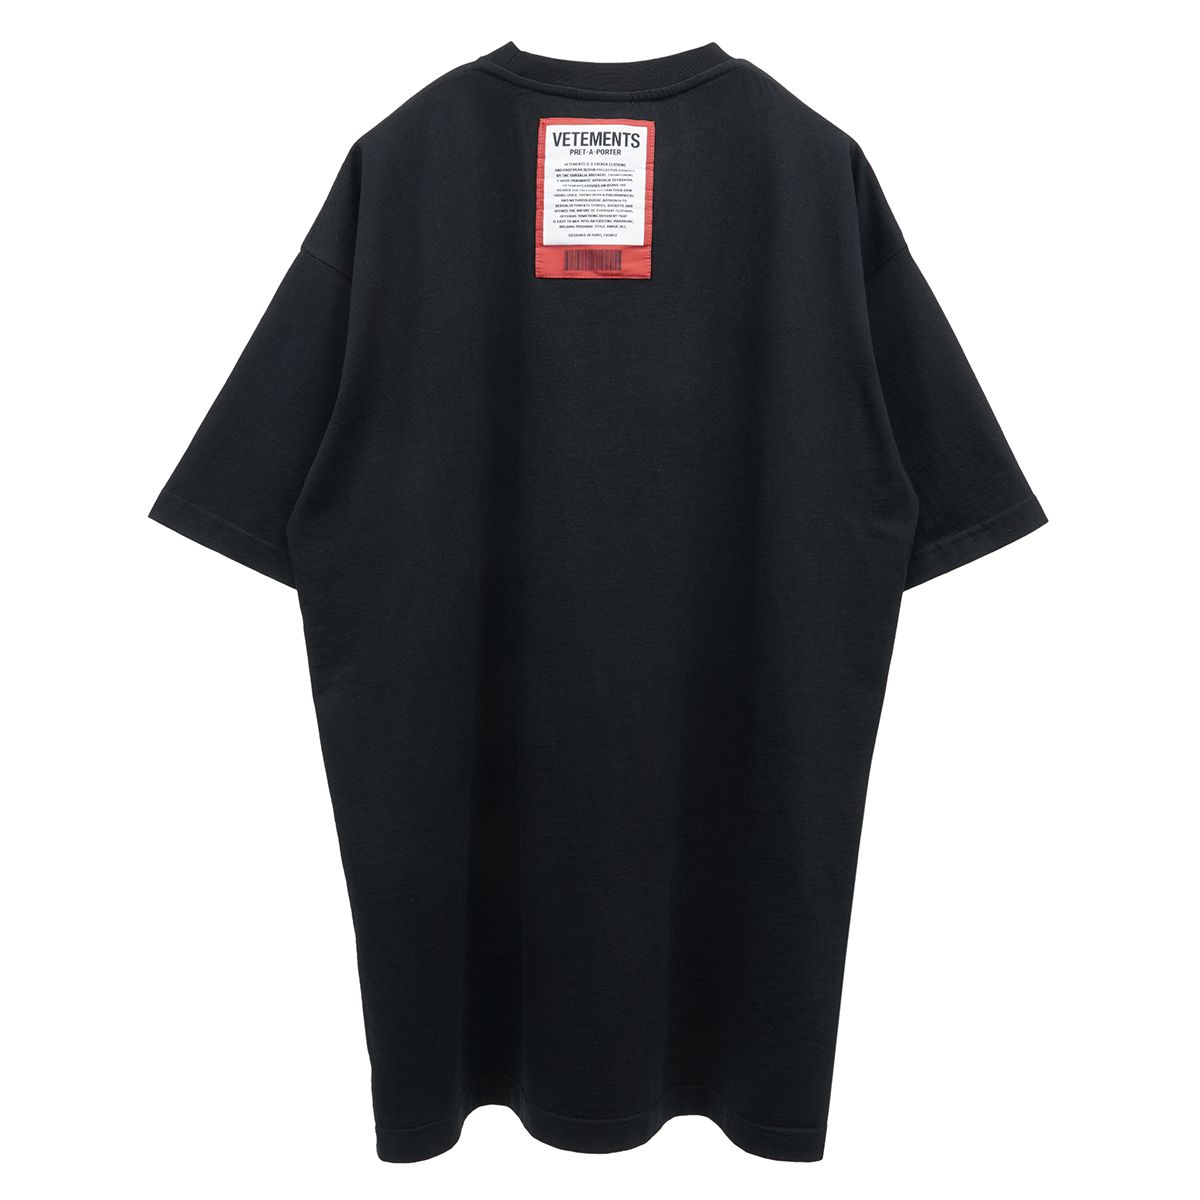 VETEMENTS LOGO PATCH T-SHIRT / BLACK